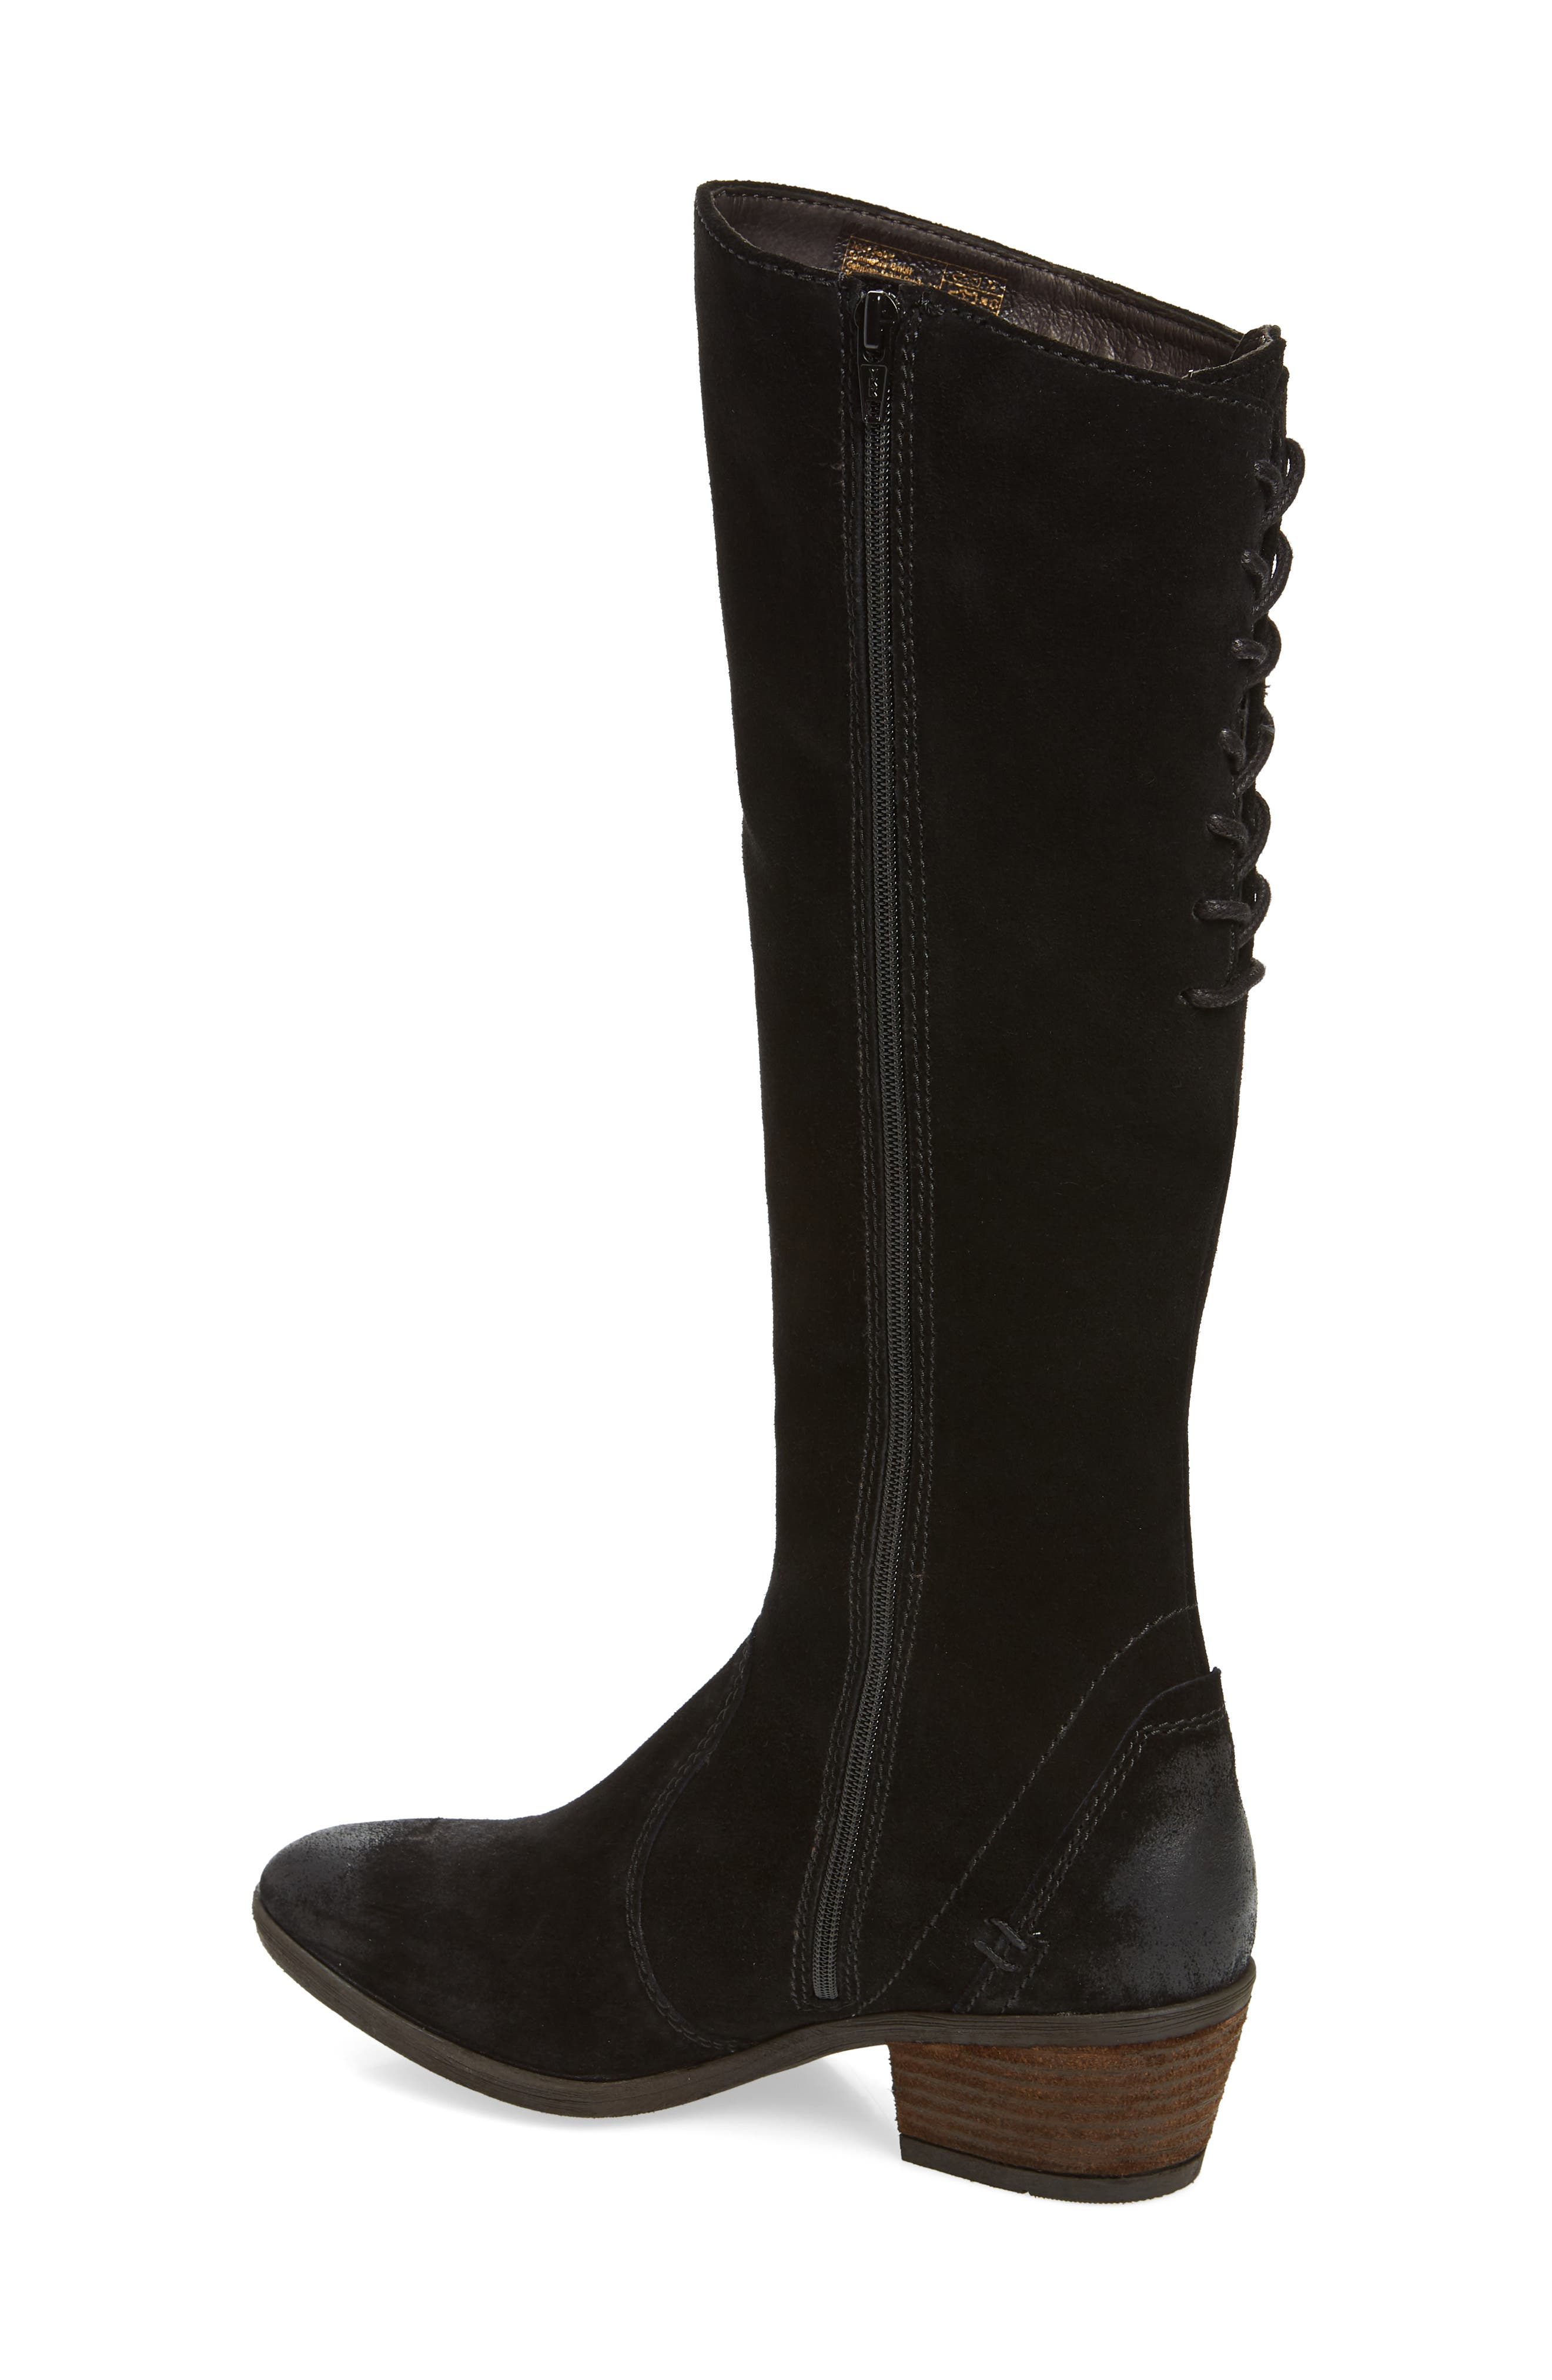 Daphne 33 Knee High Boot,                             Alternate thumbnail 2, color,                             005